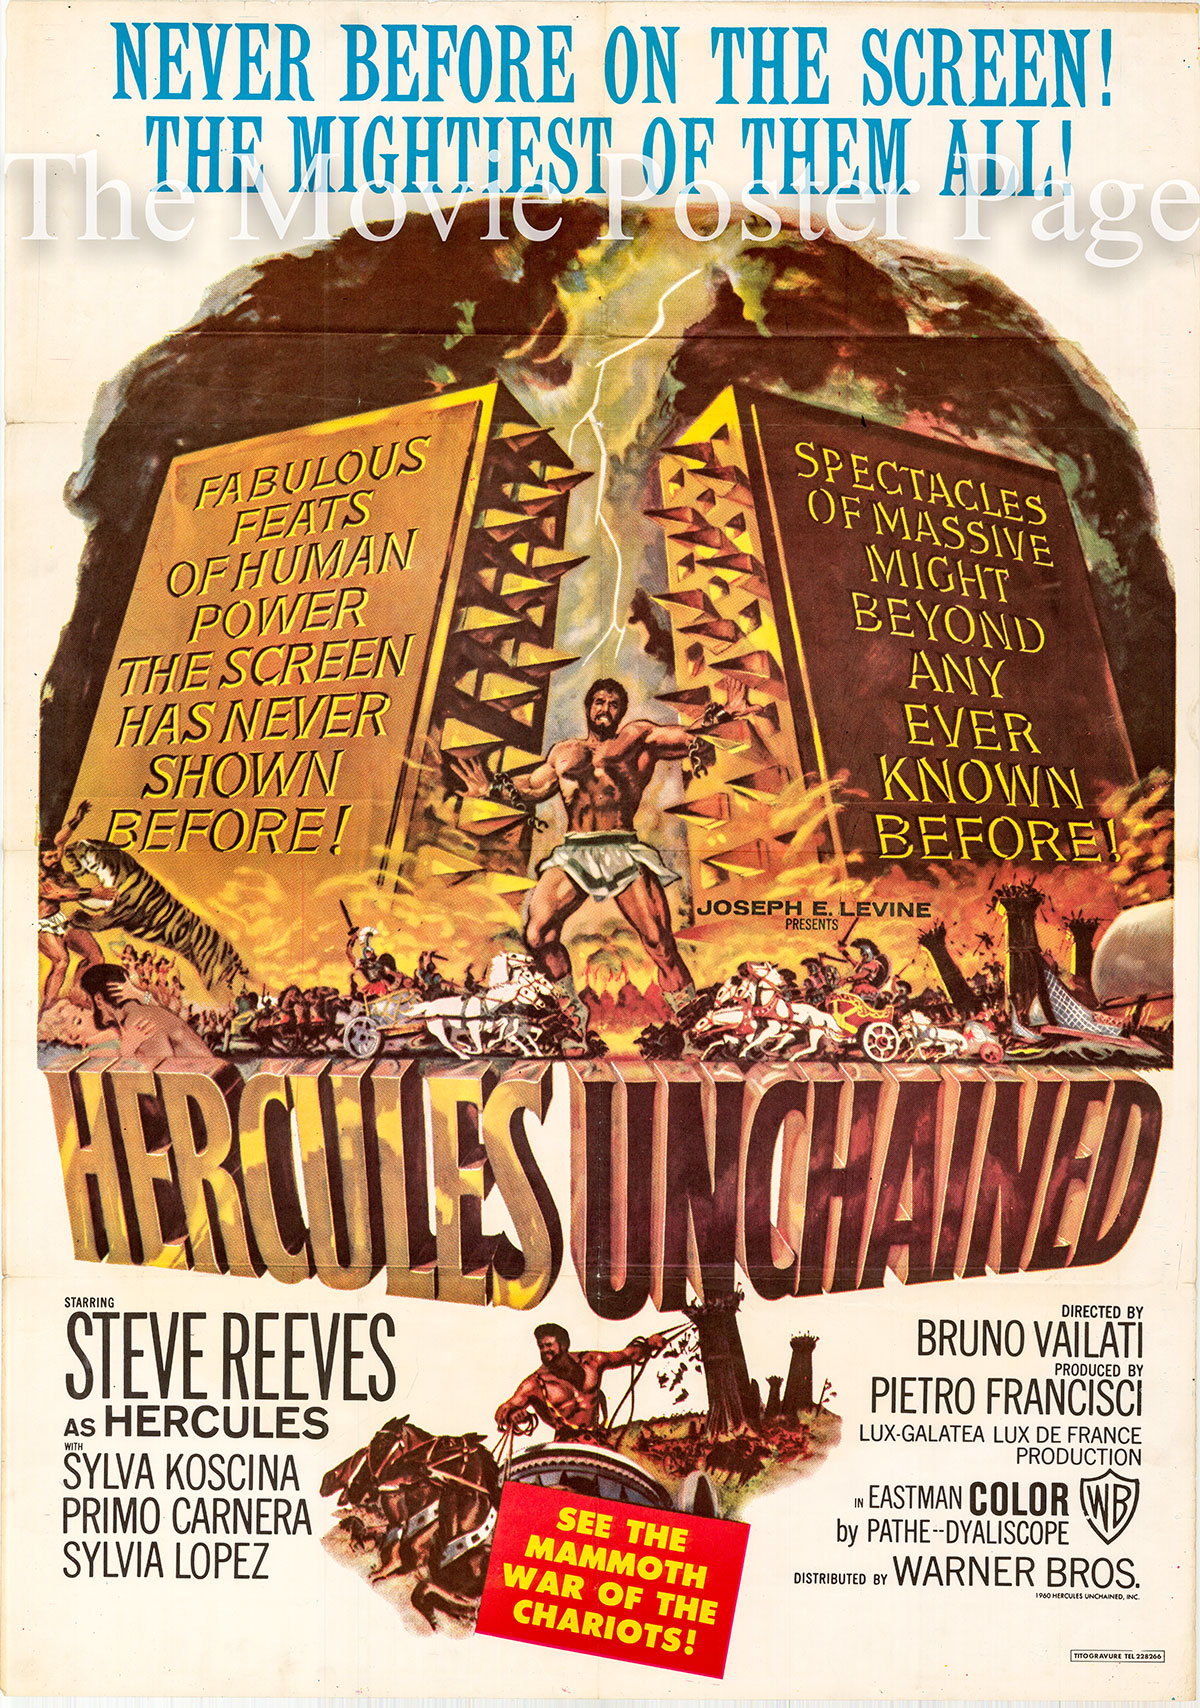 Pictured is a Lebanese one-sheet poster for a 1960 rerelease of the 1959 Bruno Vailati film Hercules Unchained starring Steve Reeves as Hercules.